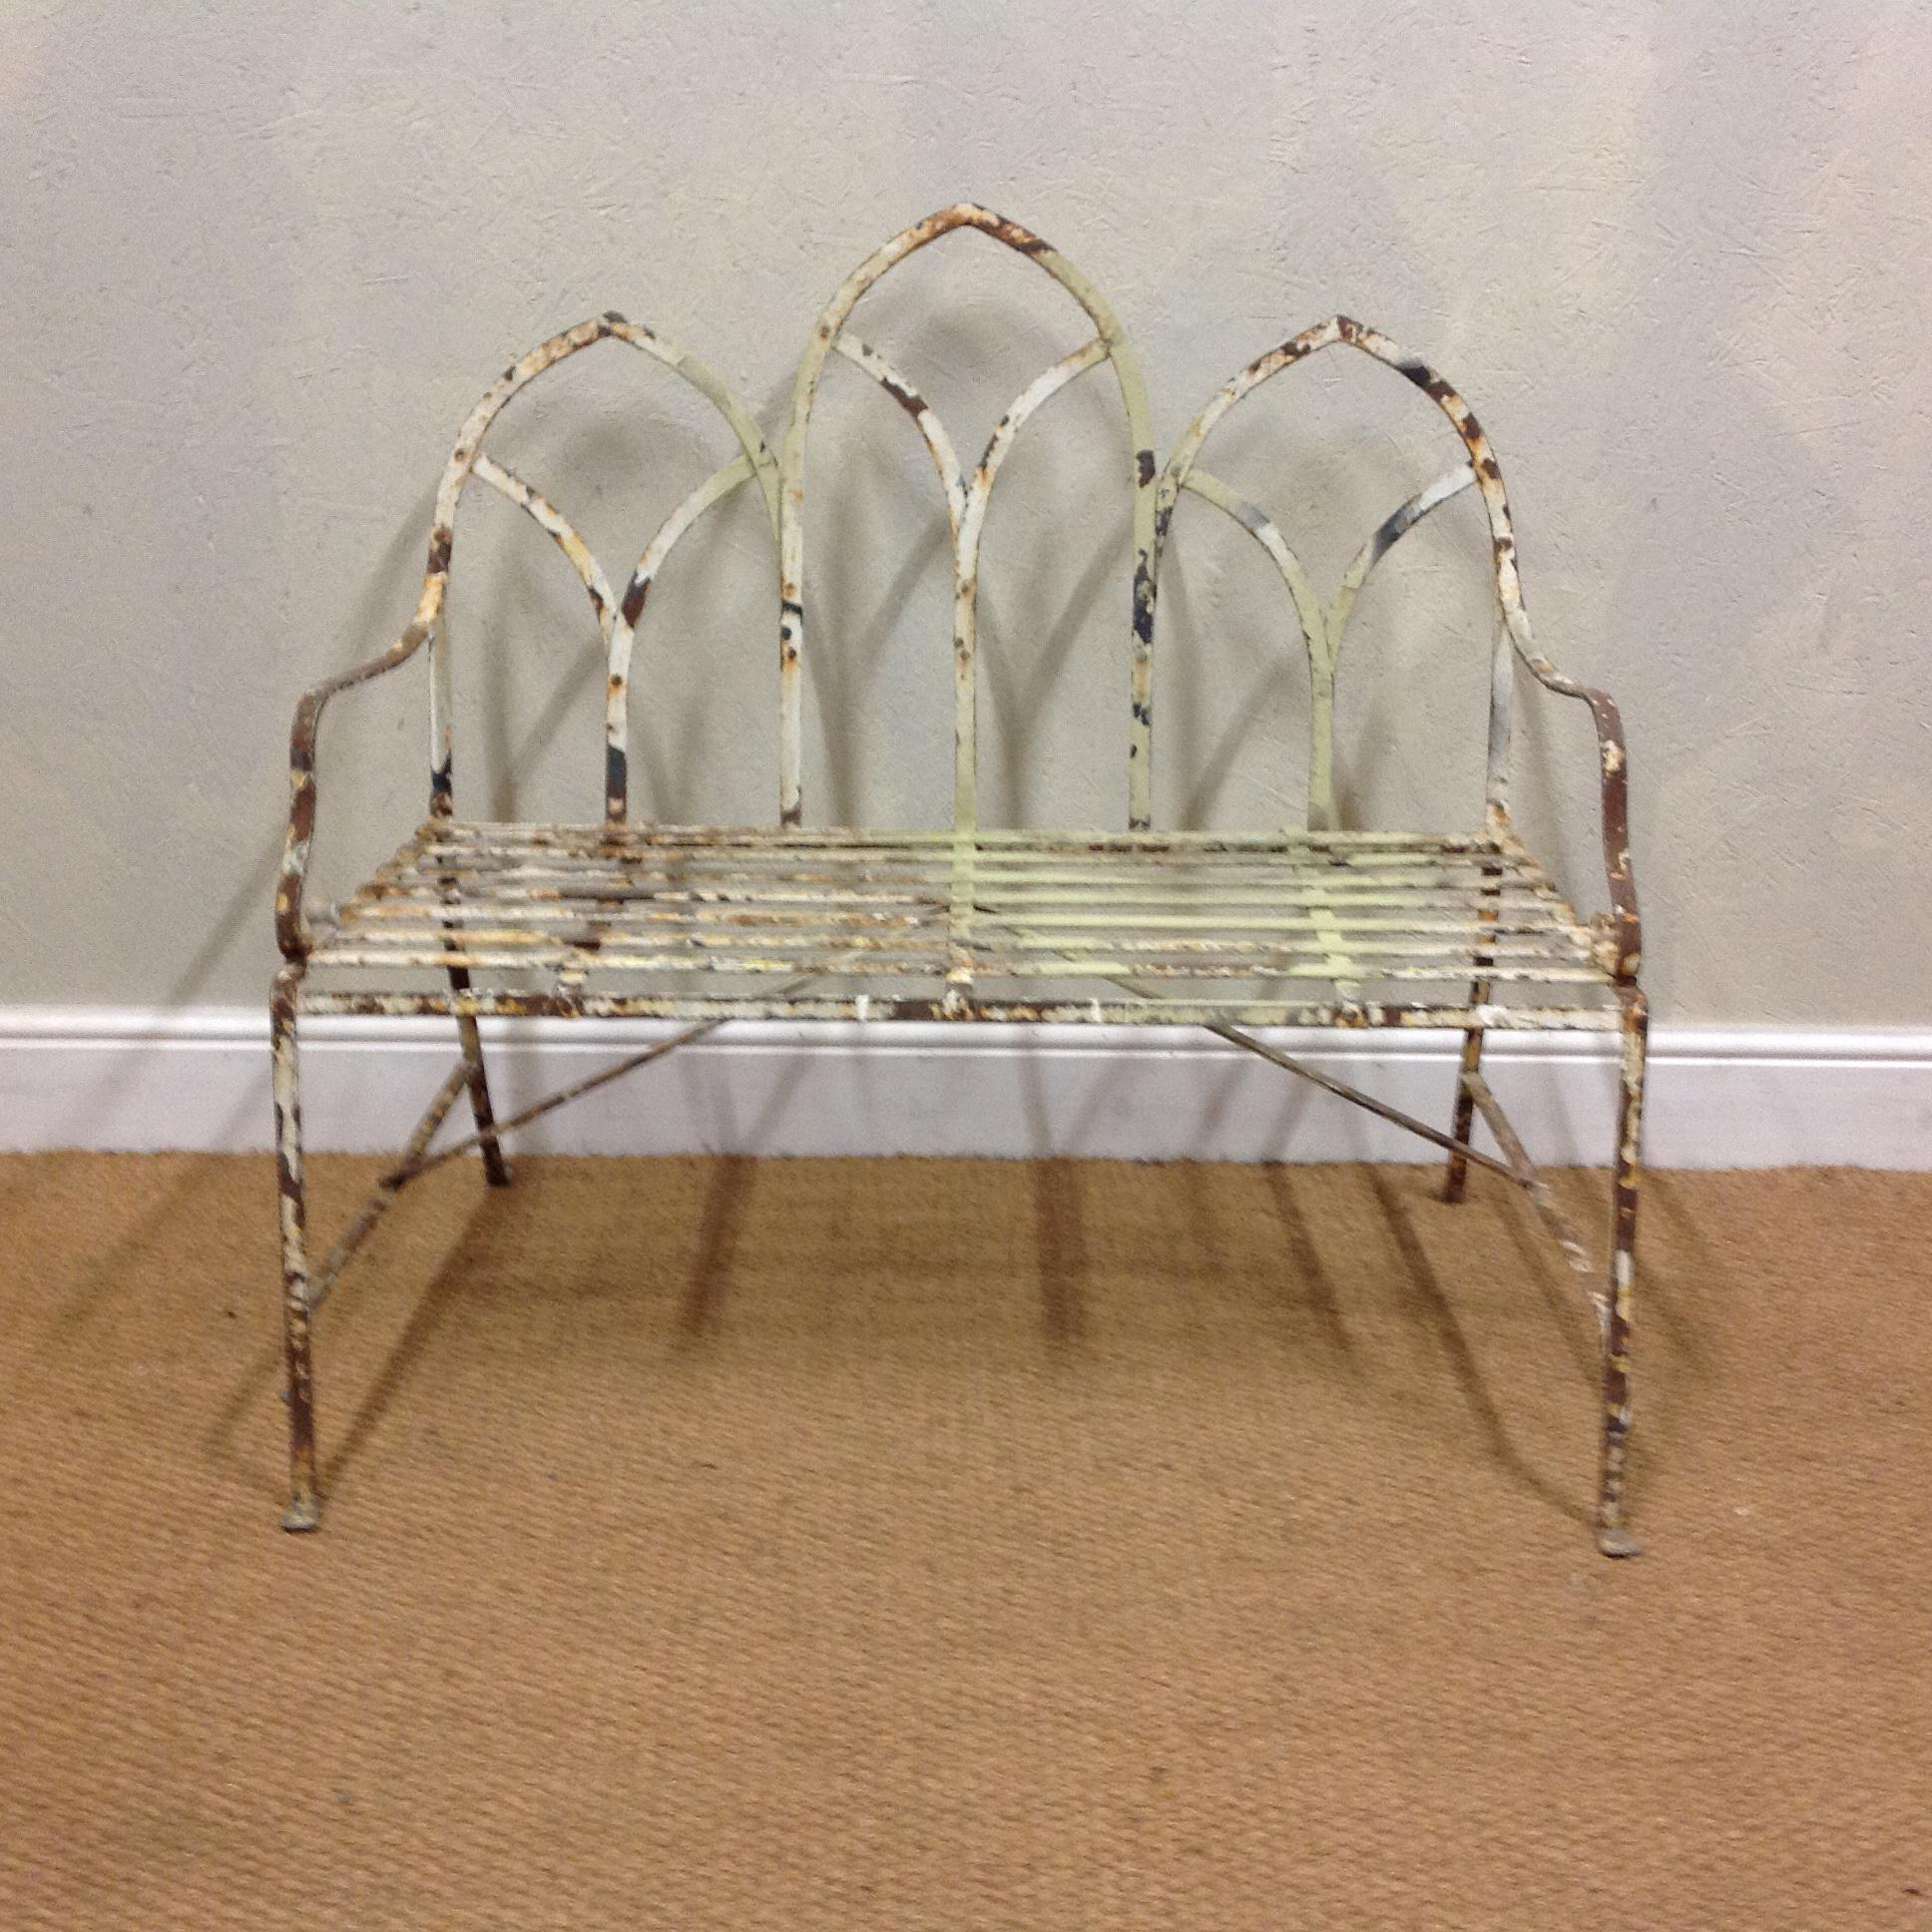 Antiques News - Robin Cox - Early C19th Gothic garden bench